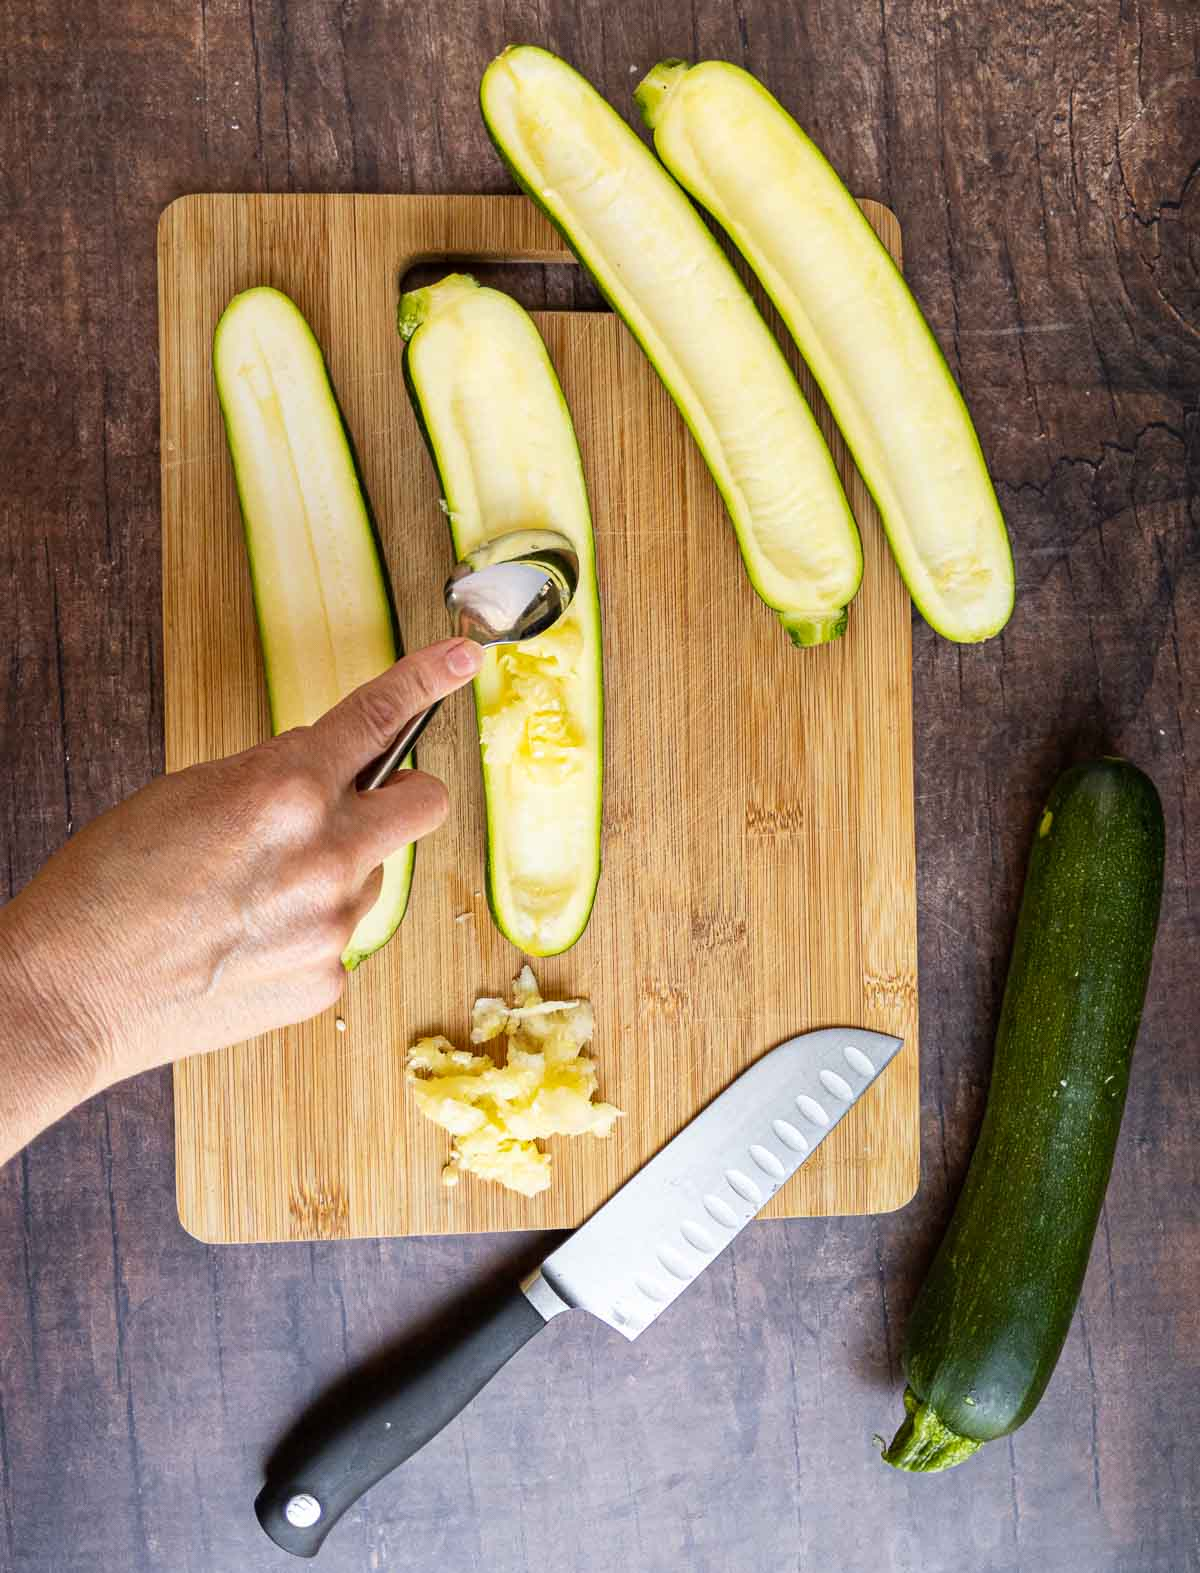 scrapping out the seeds of zucchini with a spoon